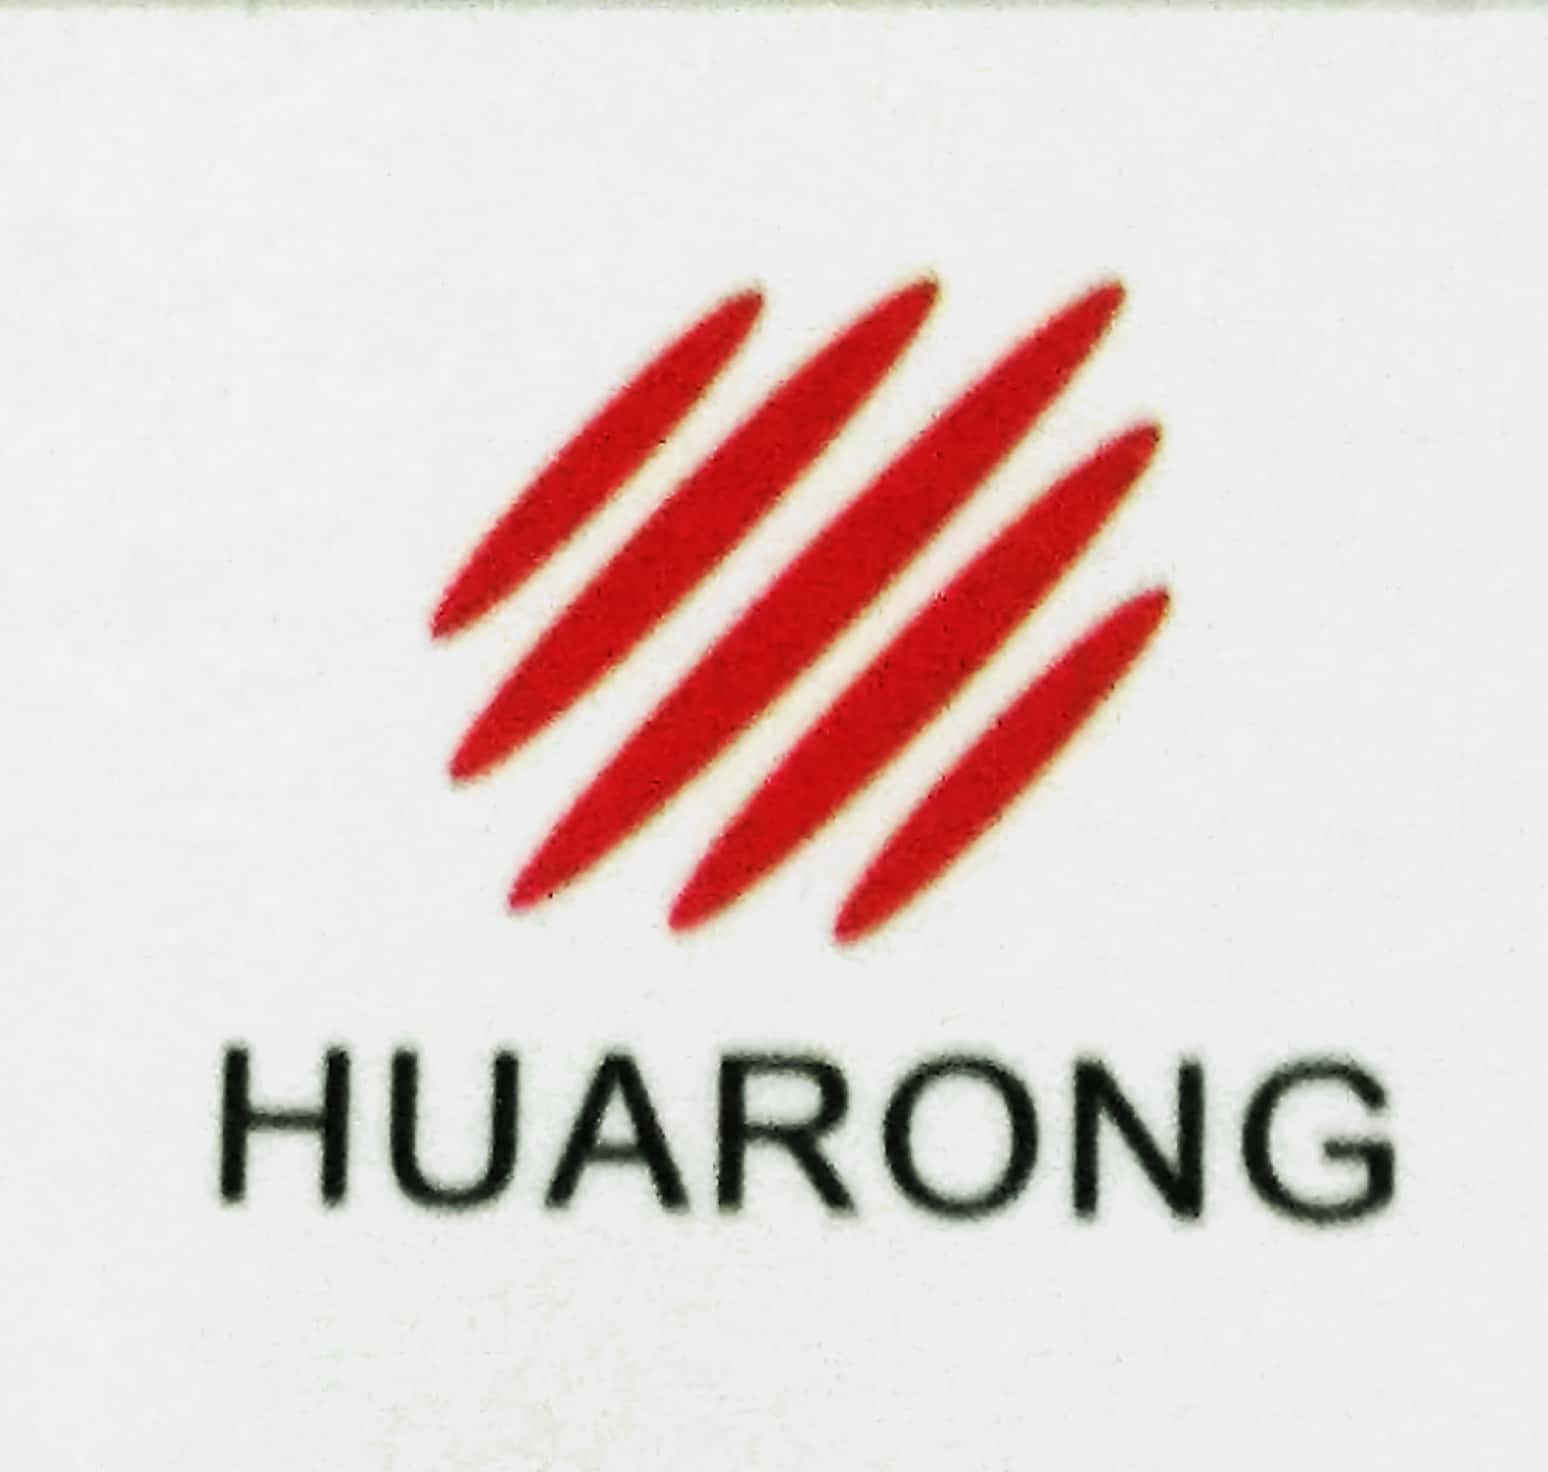 Dongguan HuaRong Communication Technologies Co., Ltd.